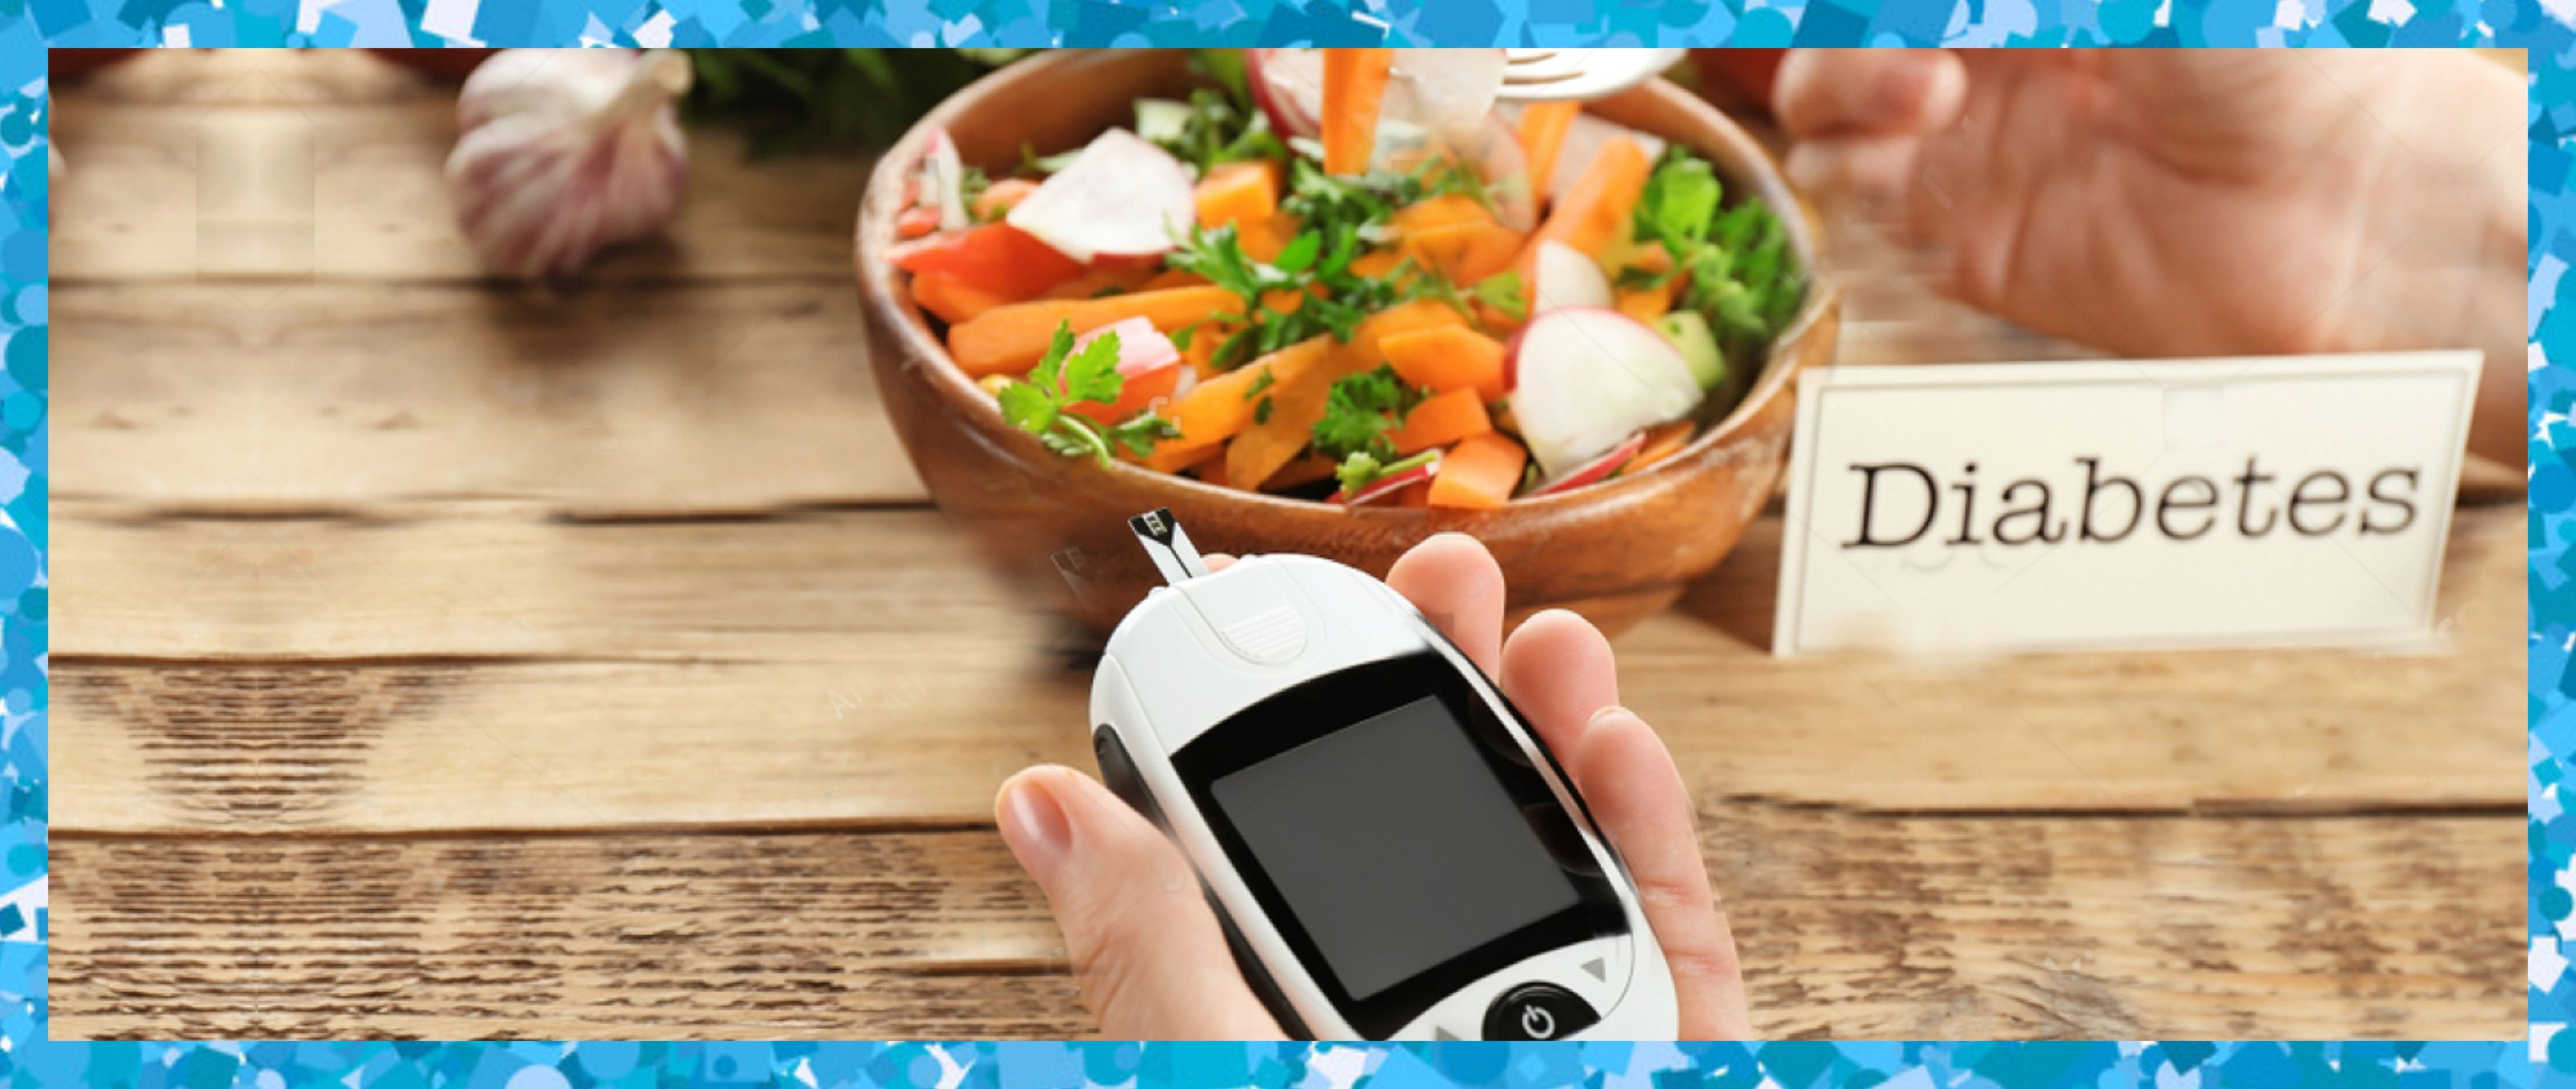 TIPS TO EAT WELL WITH DIABETES